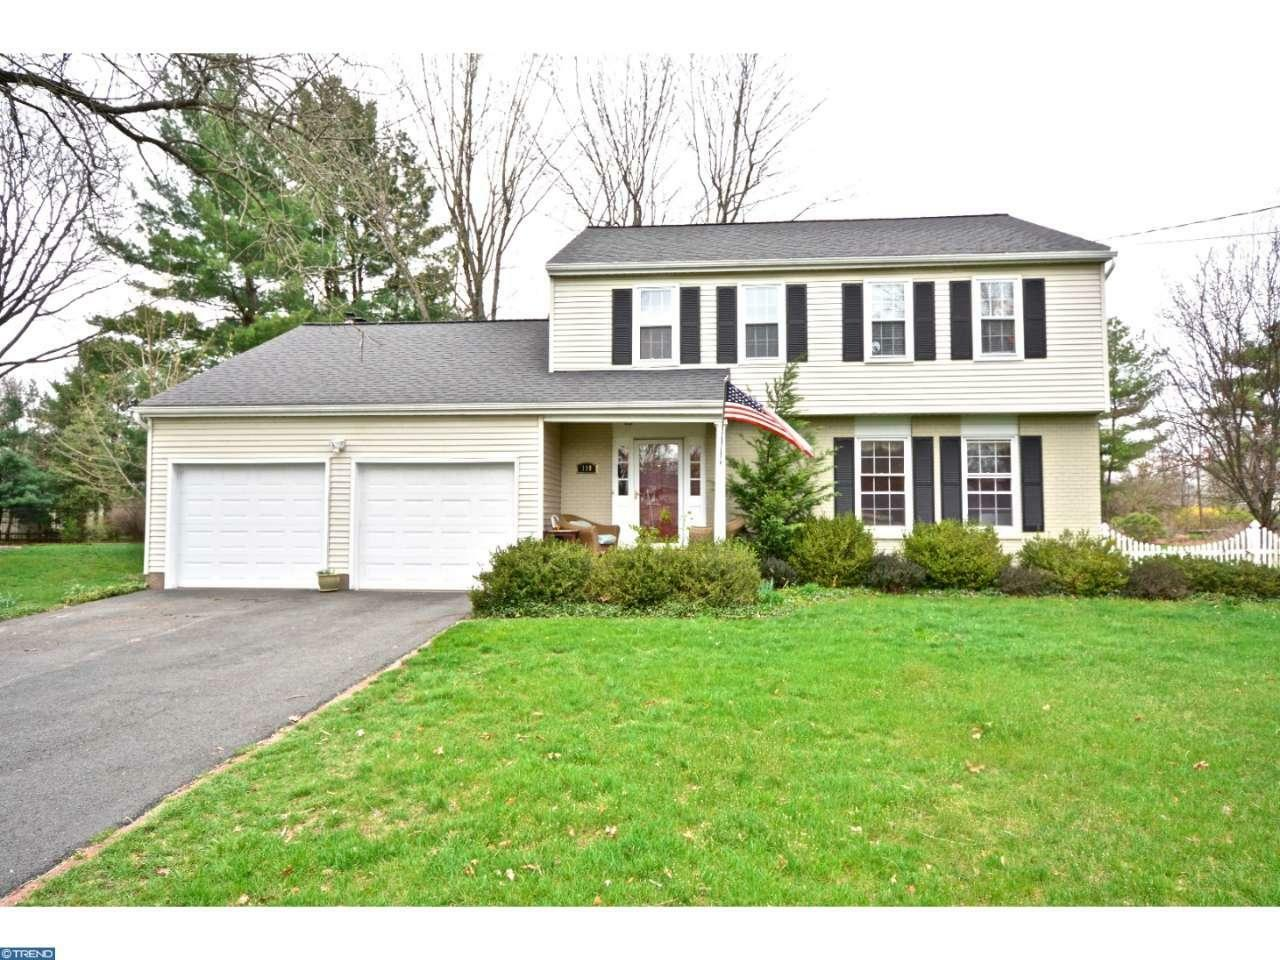 110 Darrow Dr, Pennington, NJ - USA (photo 1)